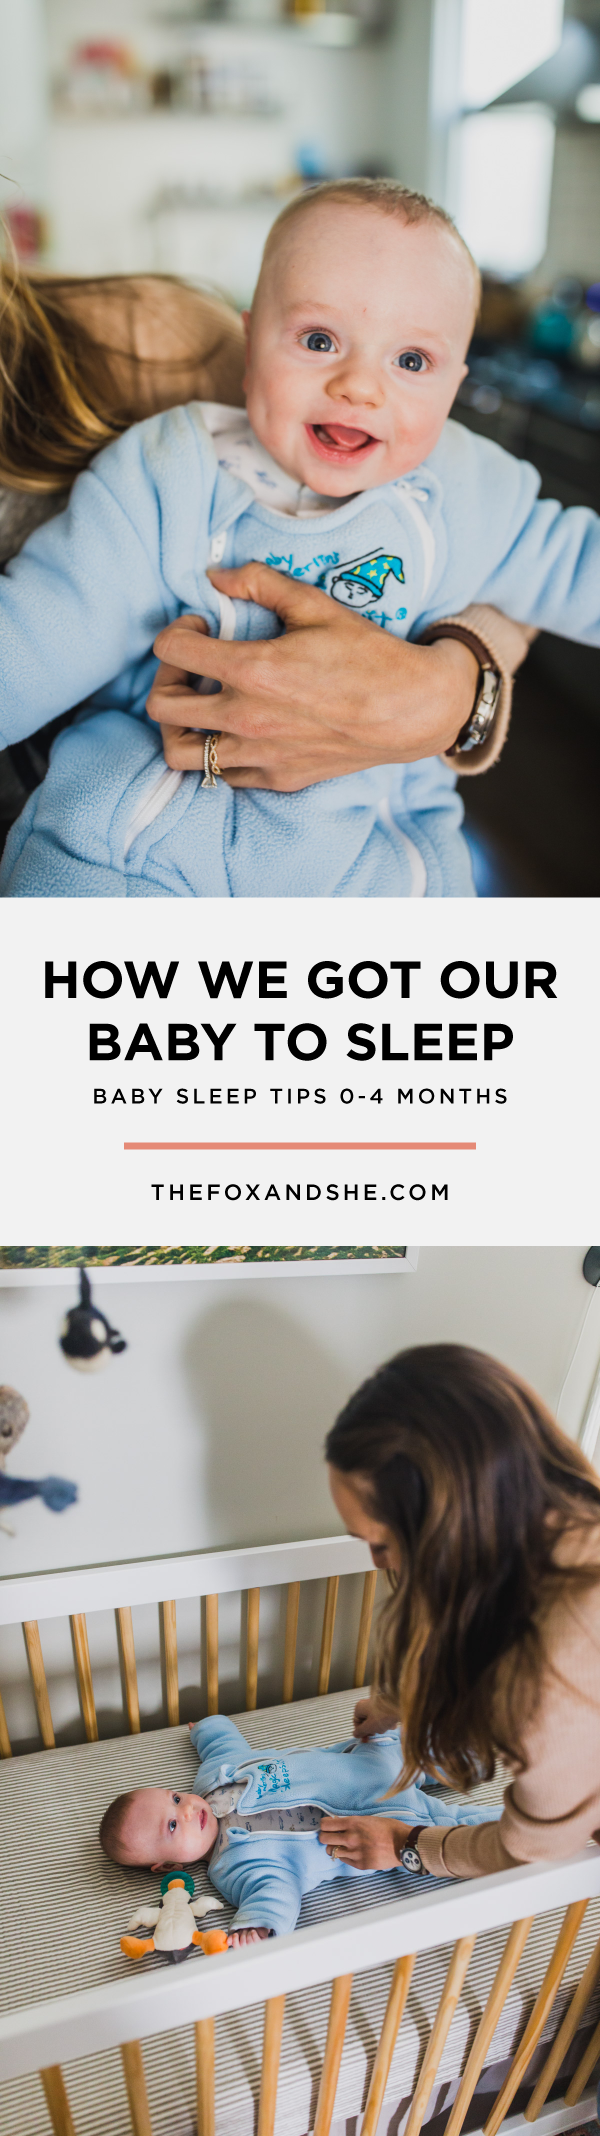 baby sleep tips for 0-4 months • our baby was sleeping through the night by 14 weeks